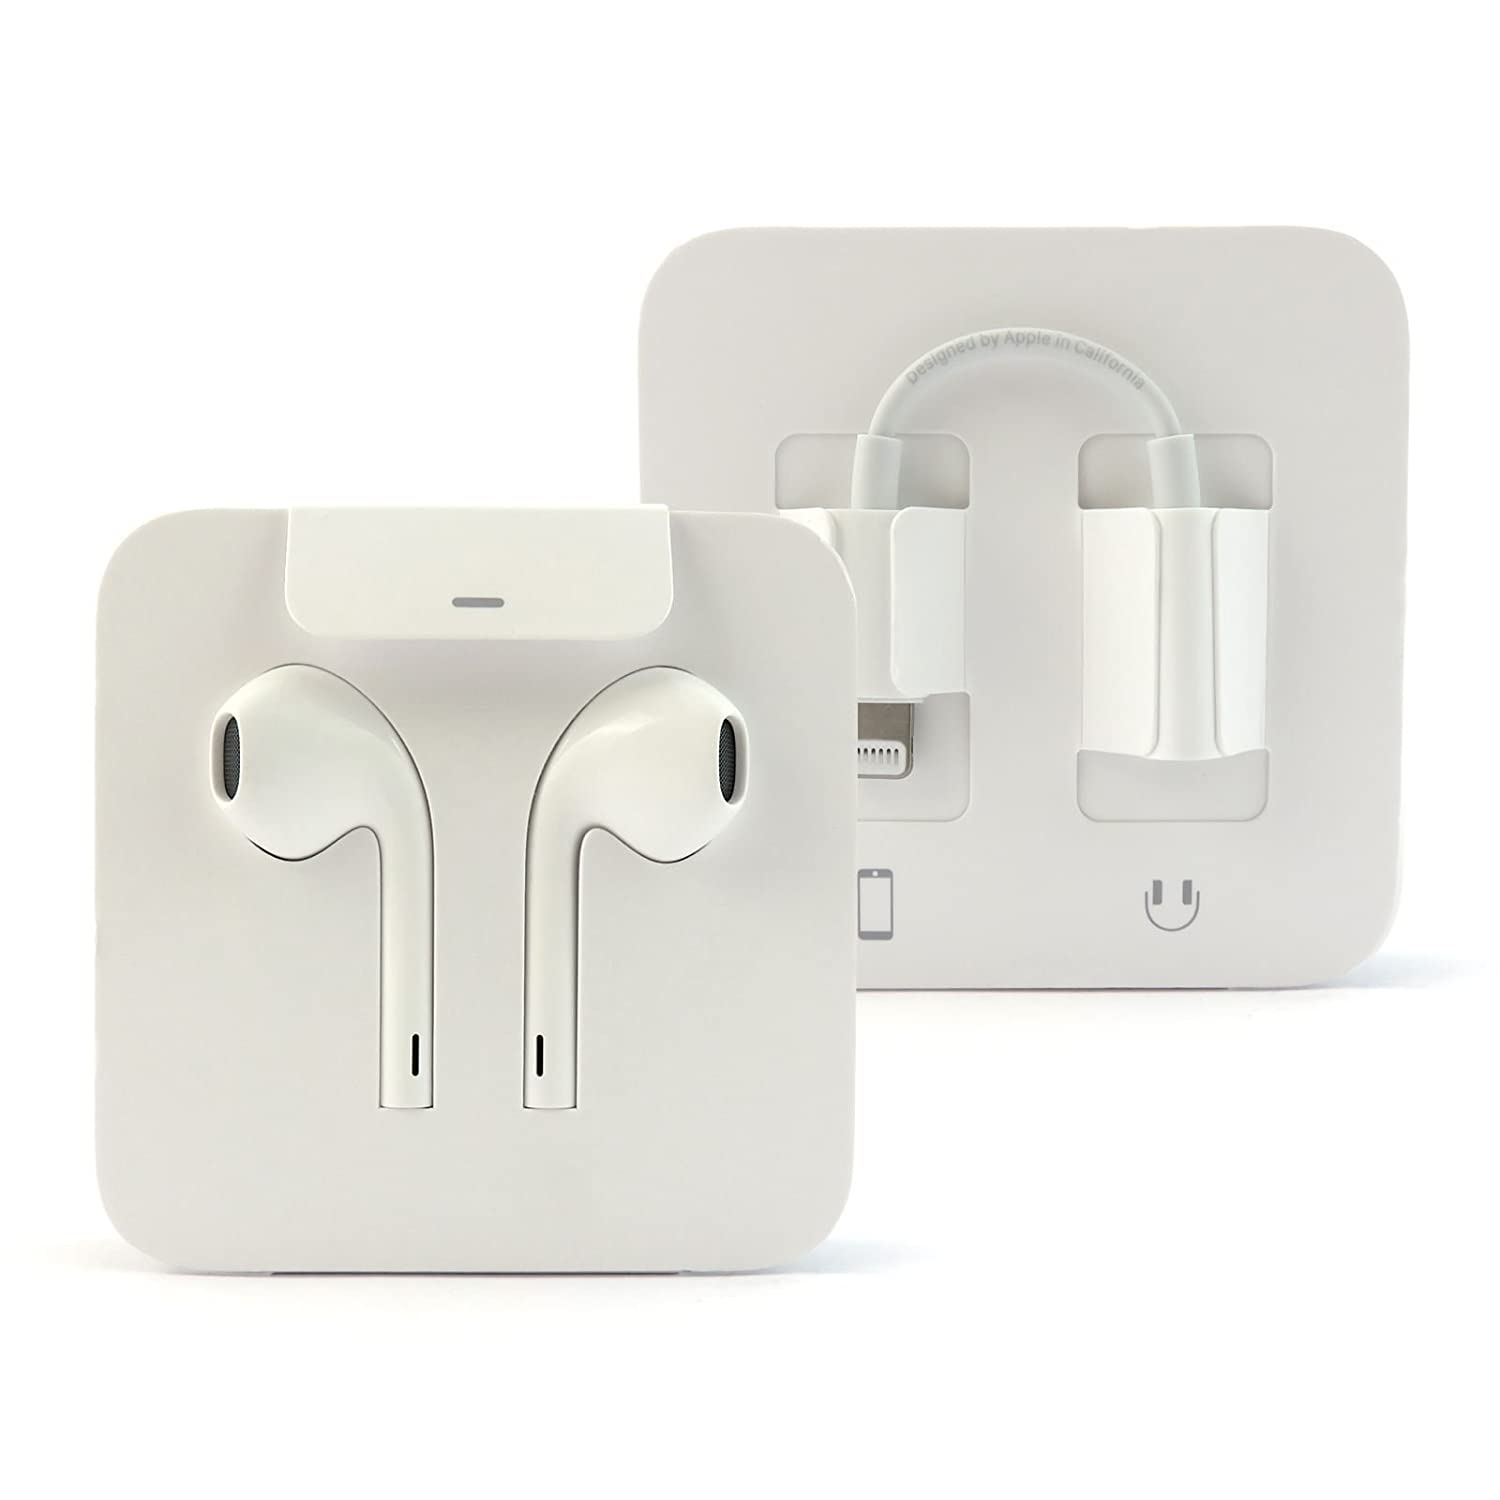 Apple EarPods Earbud Earphones With Lightning Connector Amazoncouk Electronics